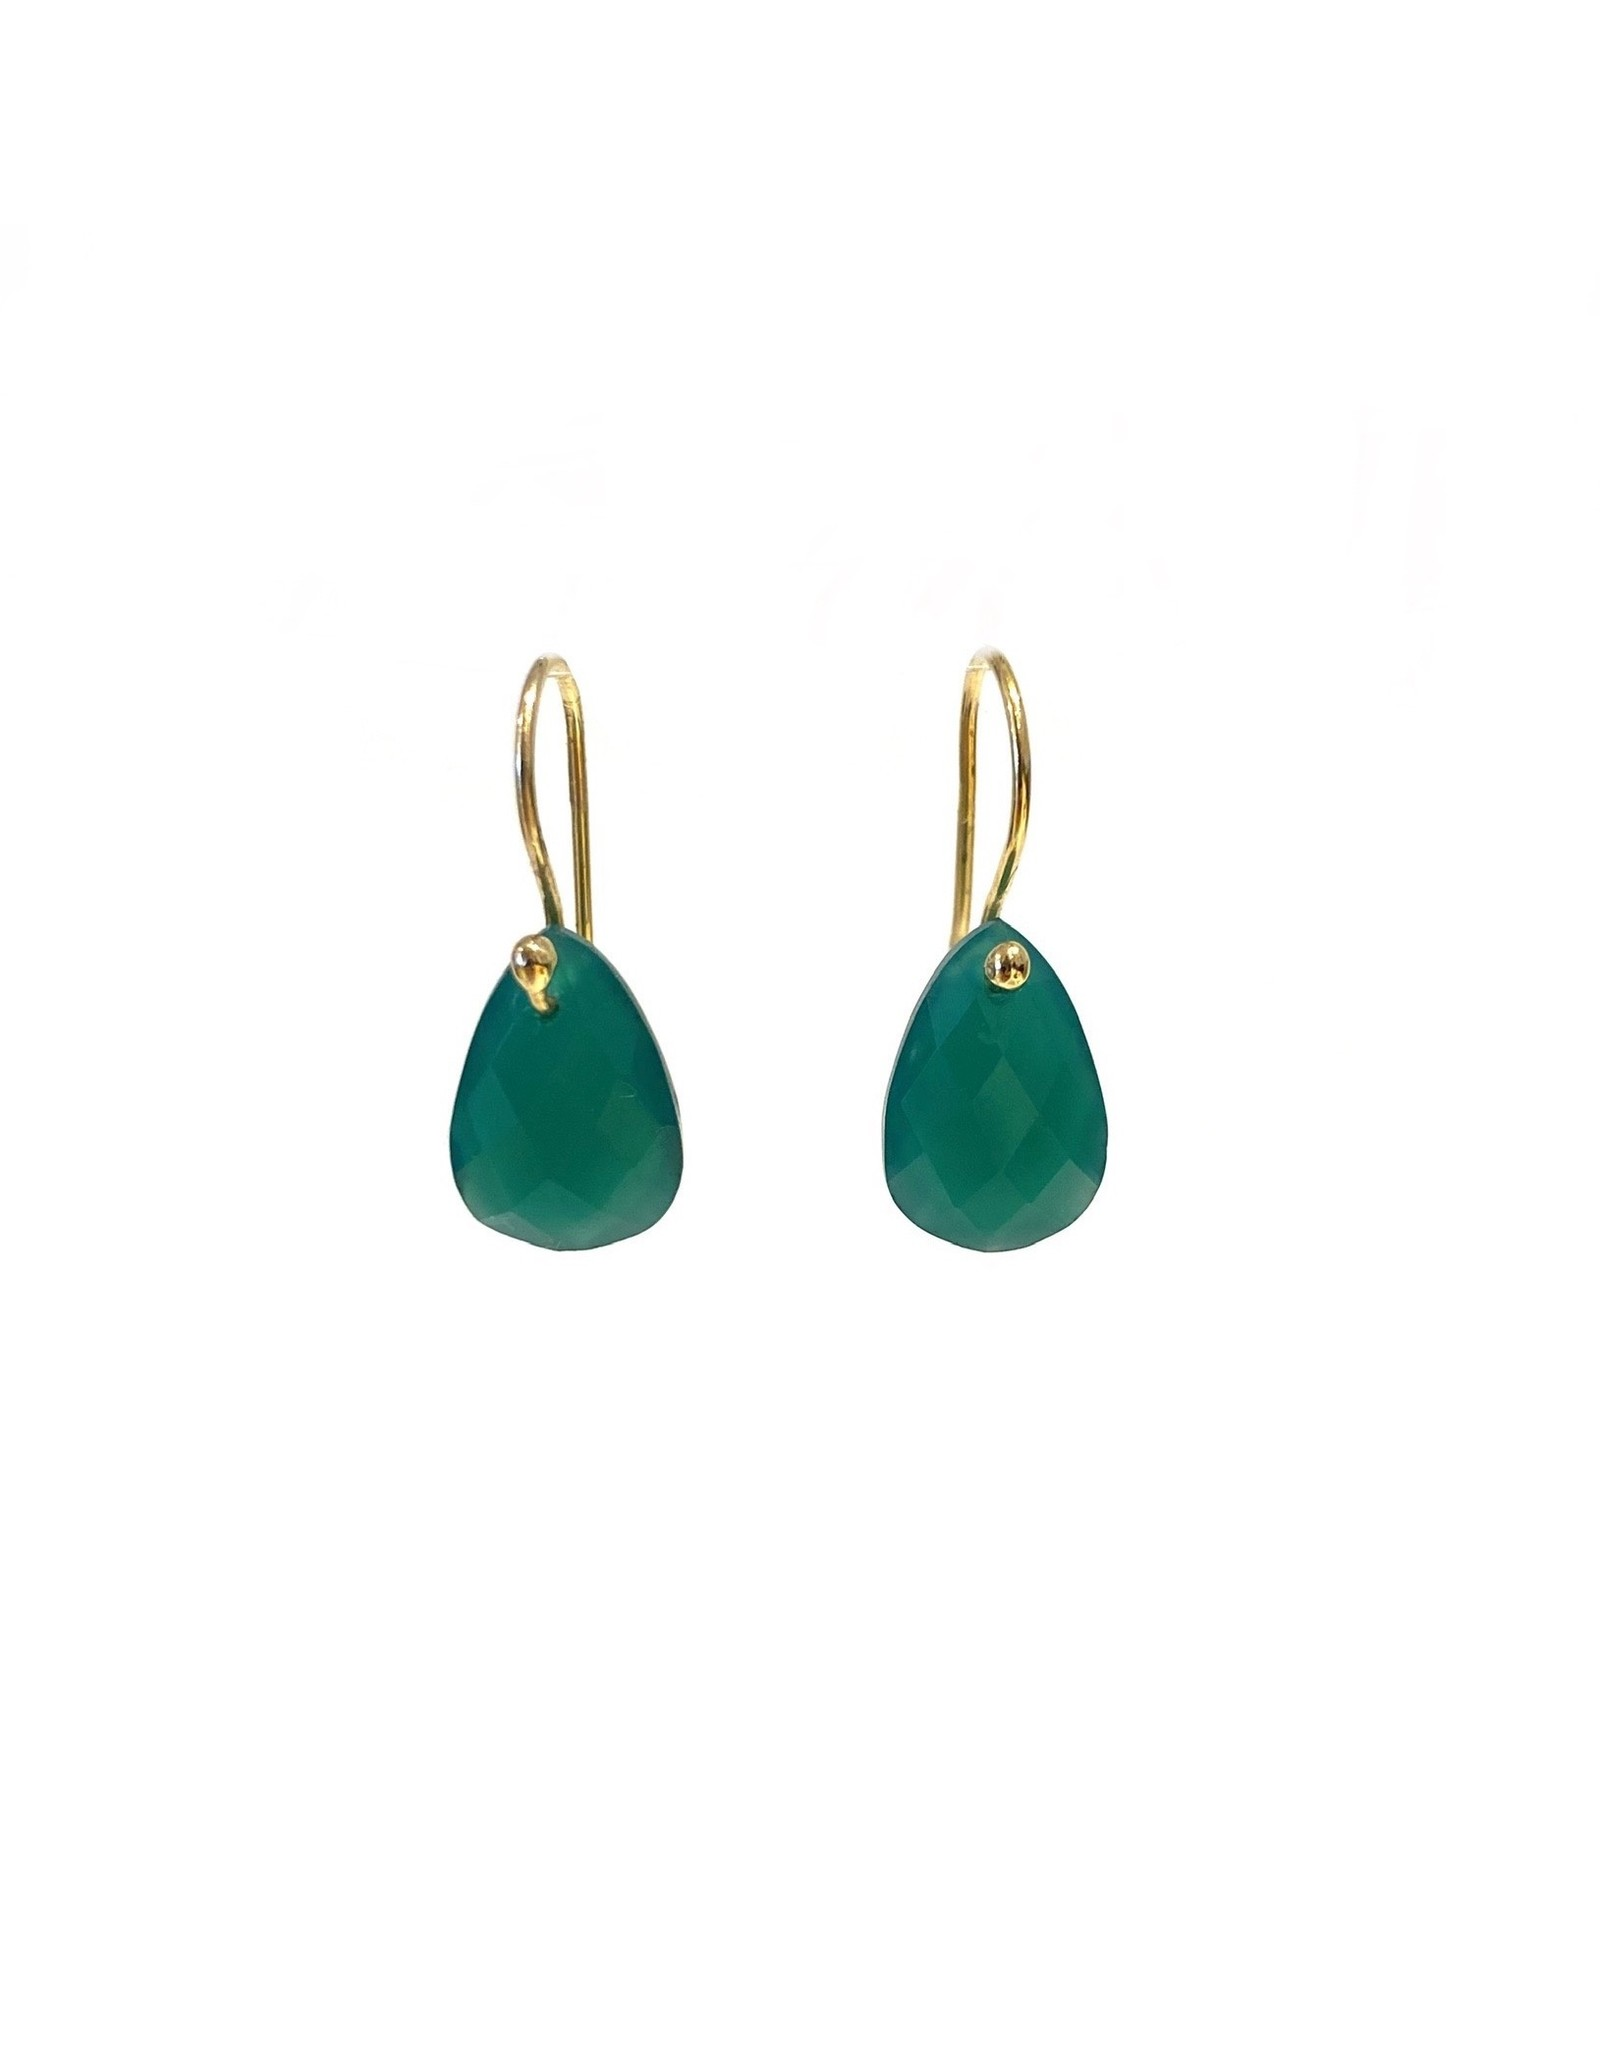 Bo Gold Earrings - Gold - Green Onyx